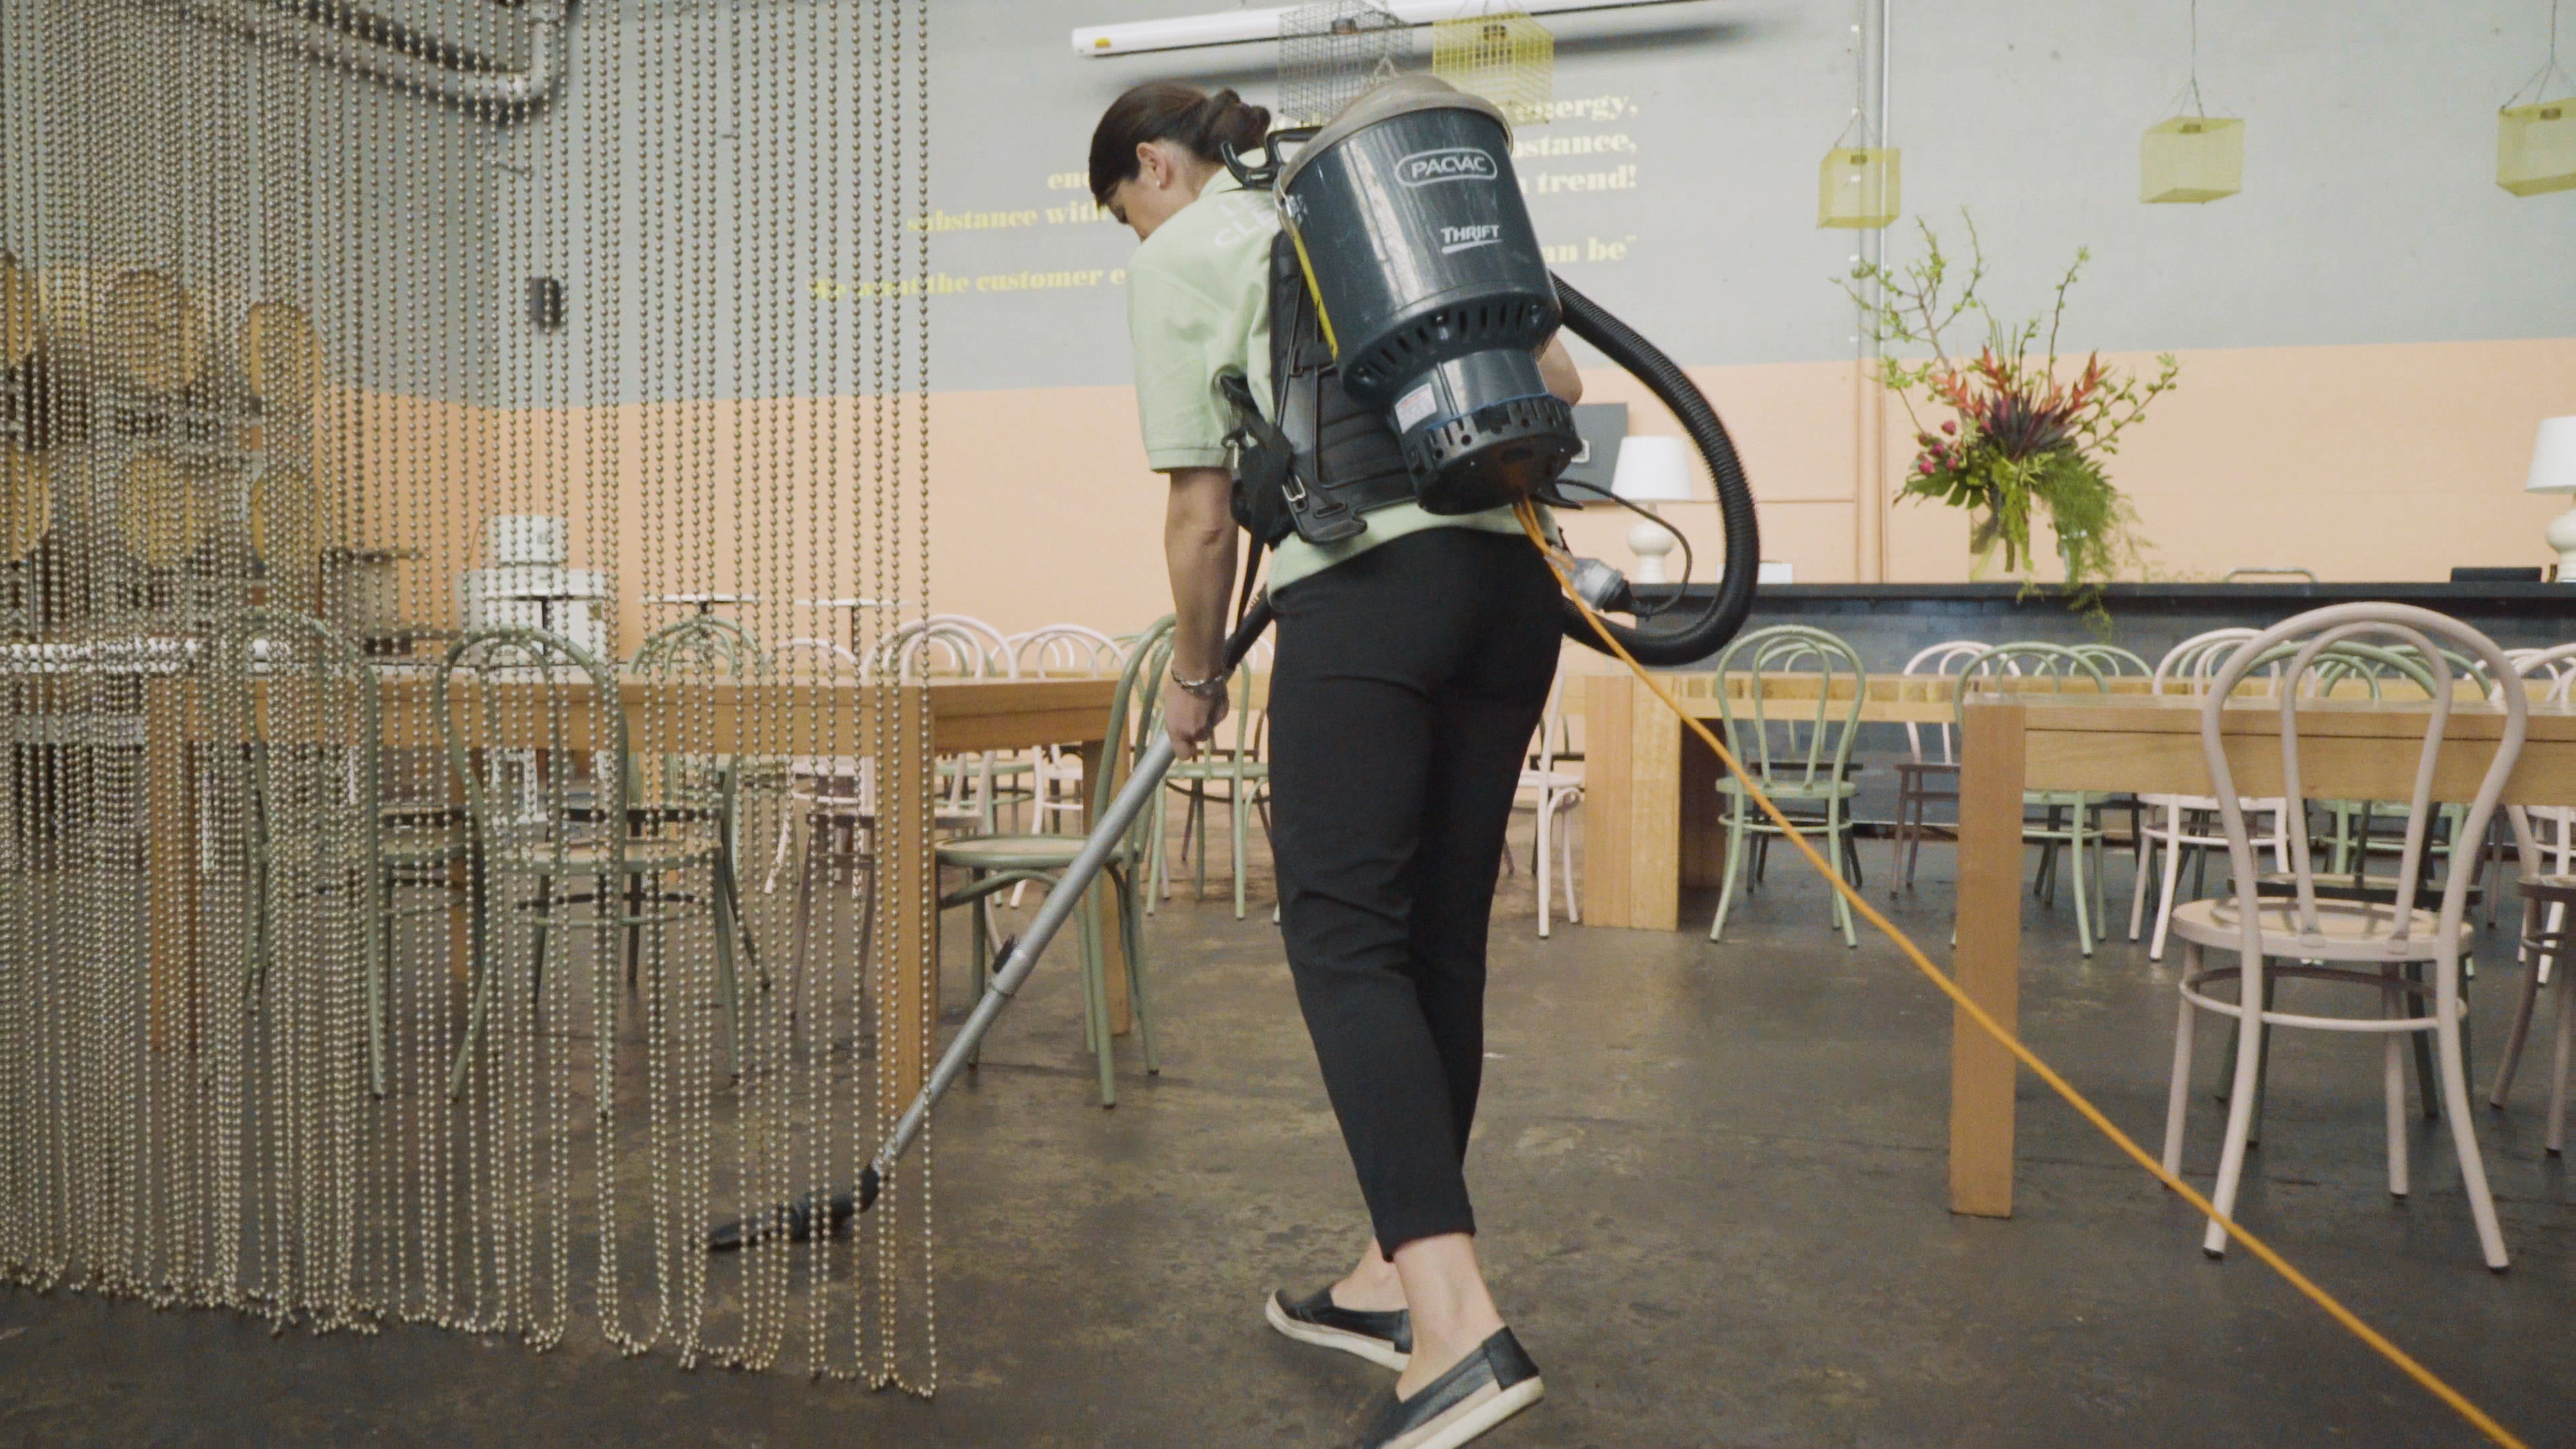 PRO CLEANING GROUP commercial contracts from $19,950 + GST.